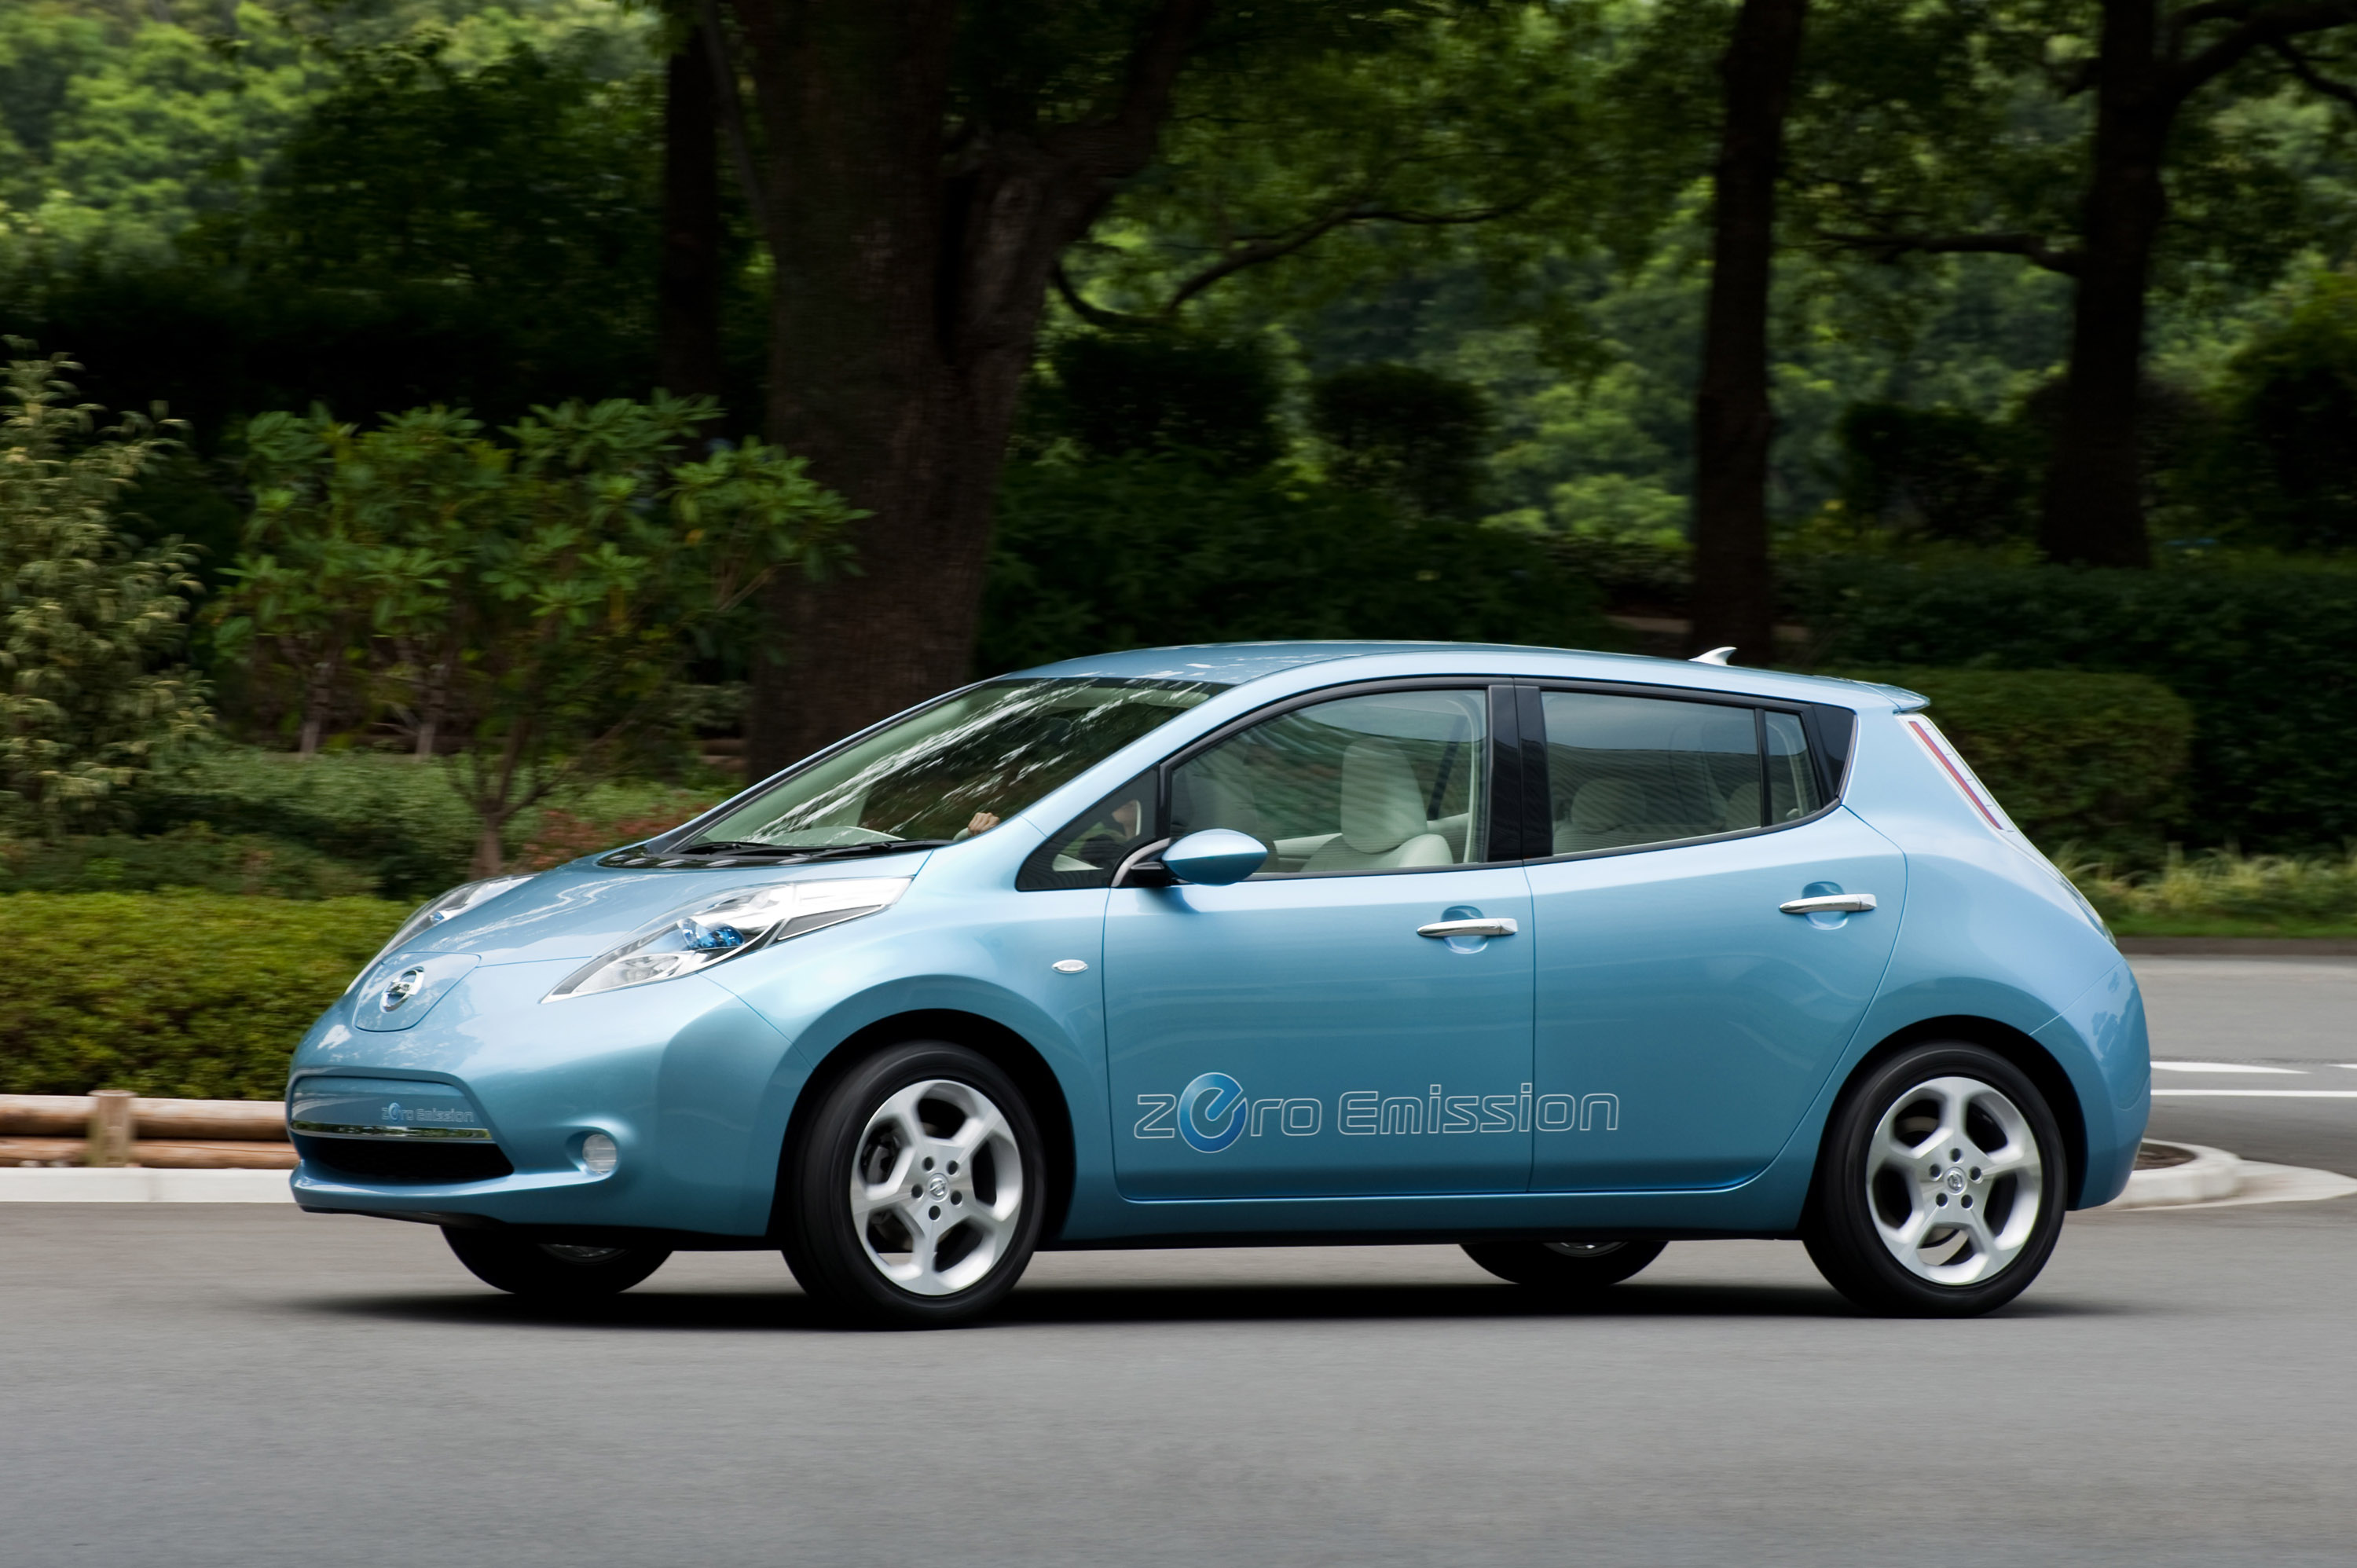 was m revved car t launched the leaf didn tag of known if honest pay up review attention it prior nissan other lease and electric much deals only to had img in perfectly i nz